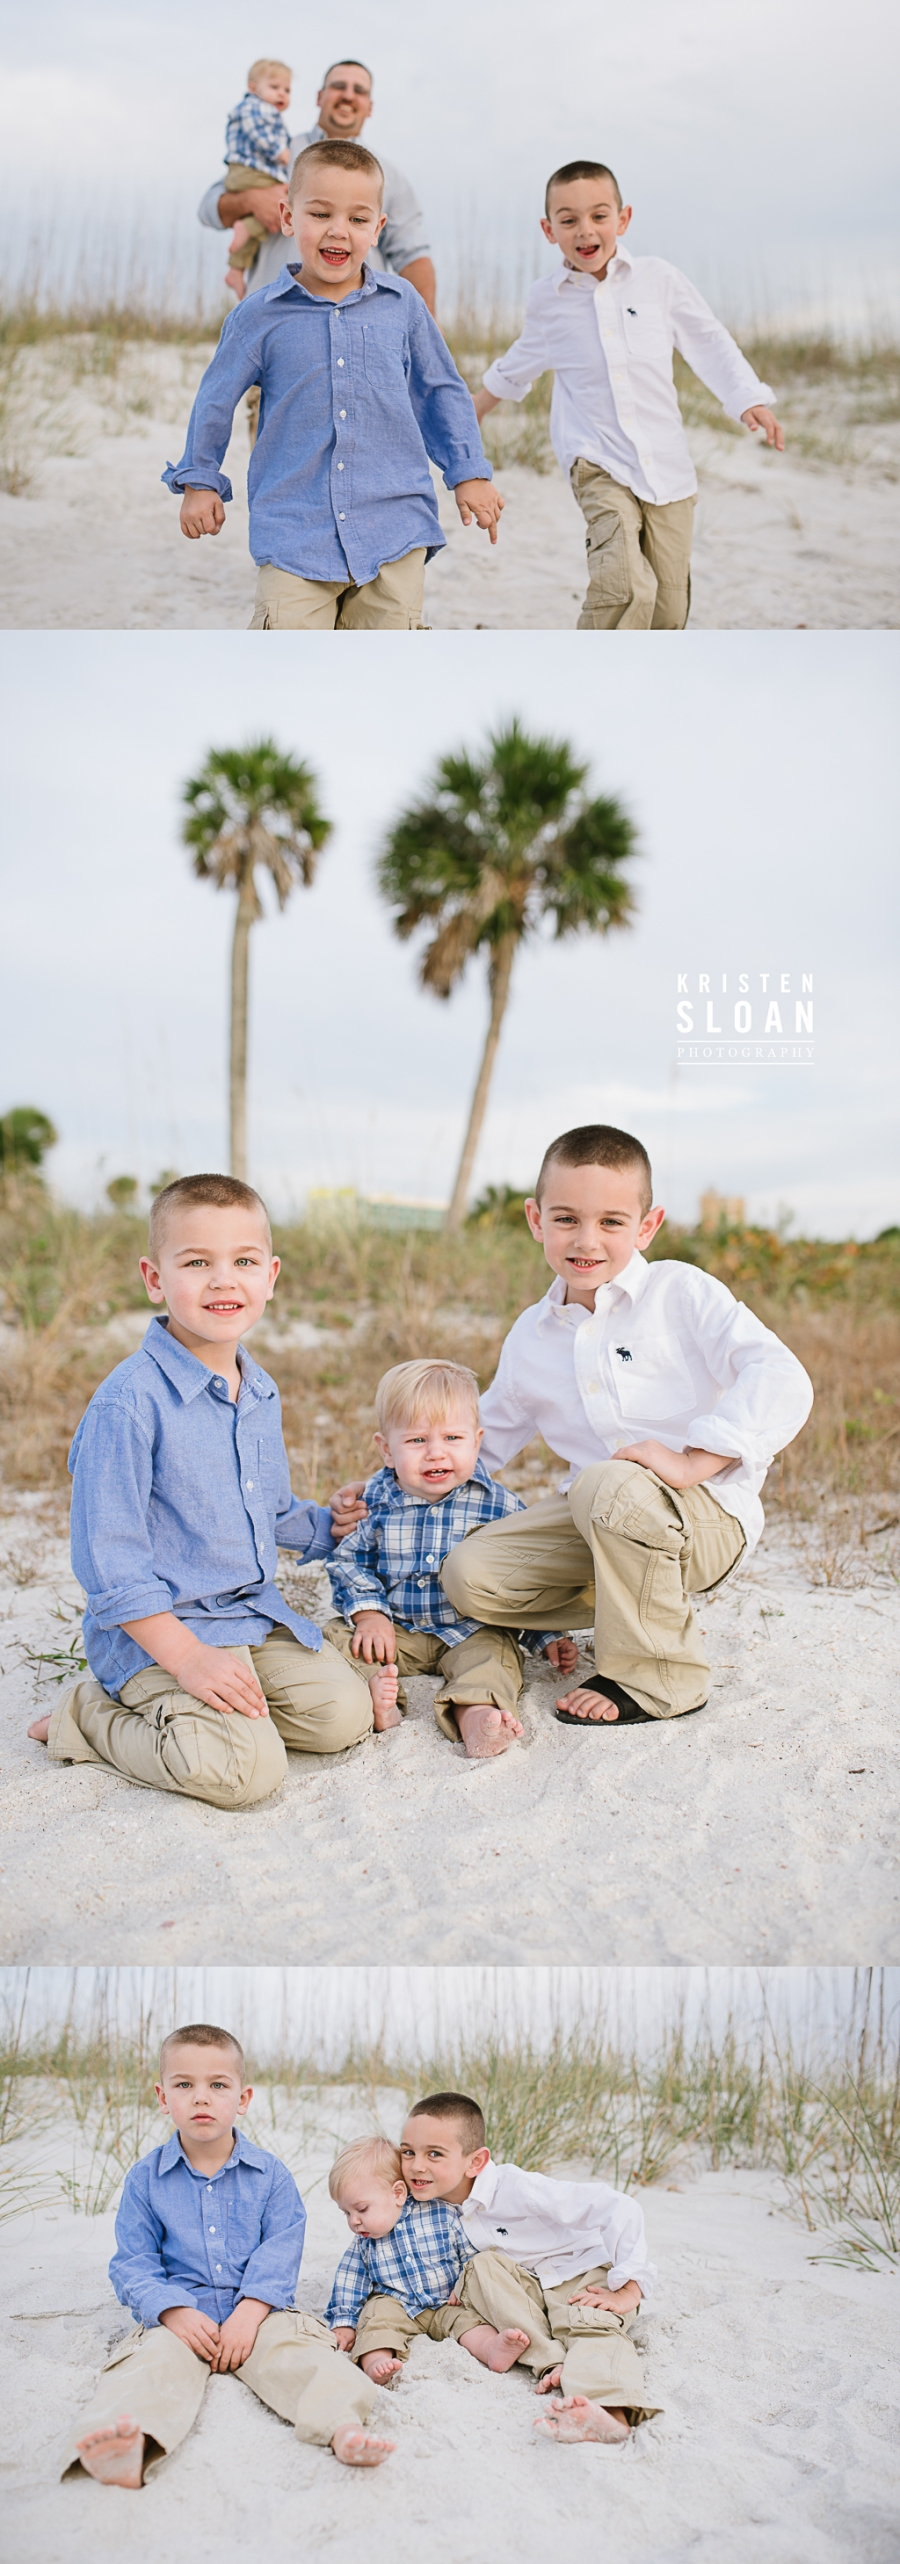 Tradewinds Resort Family Beach Photos in Treasure Island by Kristen Sloan Photography | What to Wear to Your Beach Portrait Photos Blues, Whites + Tan